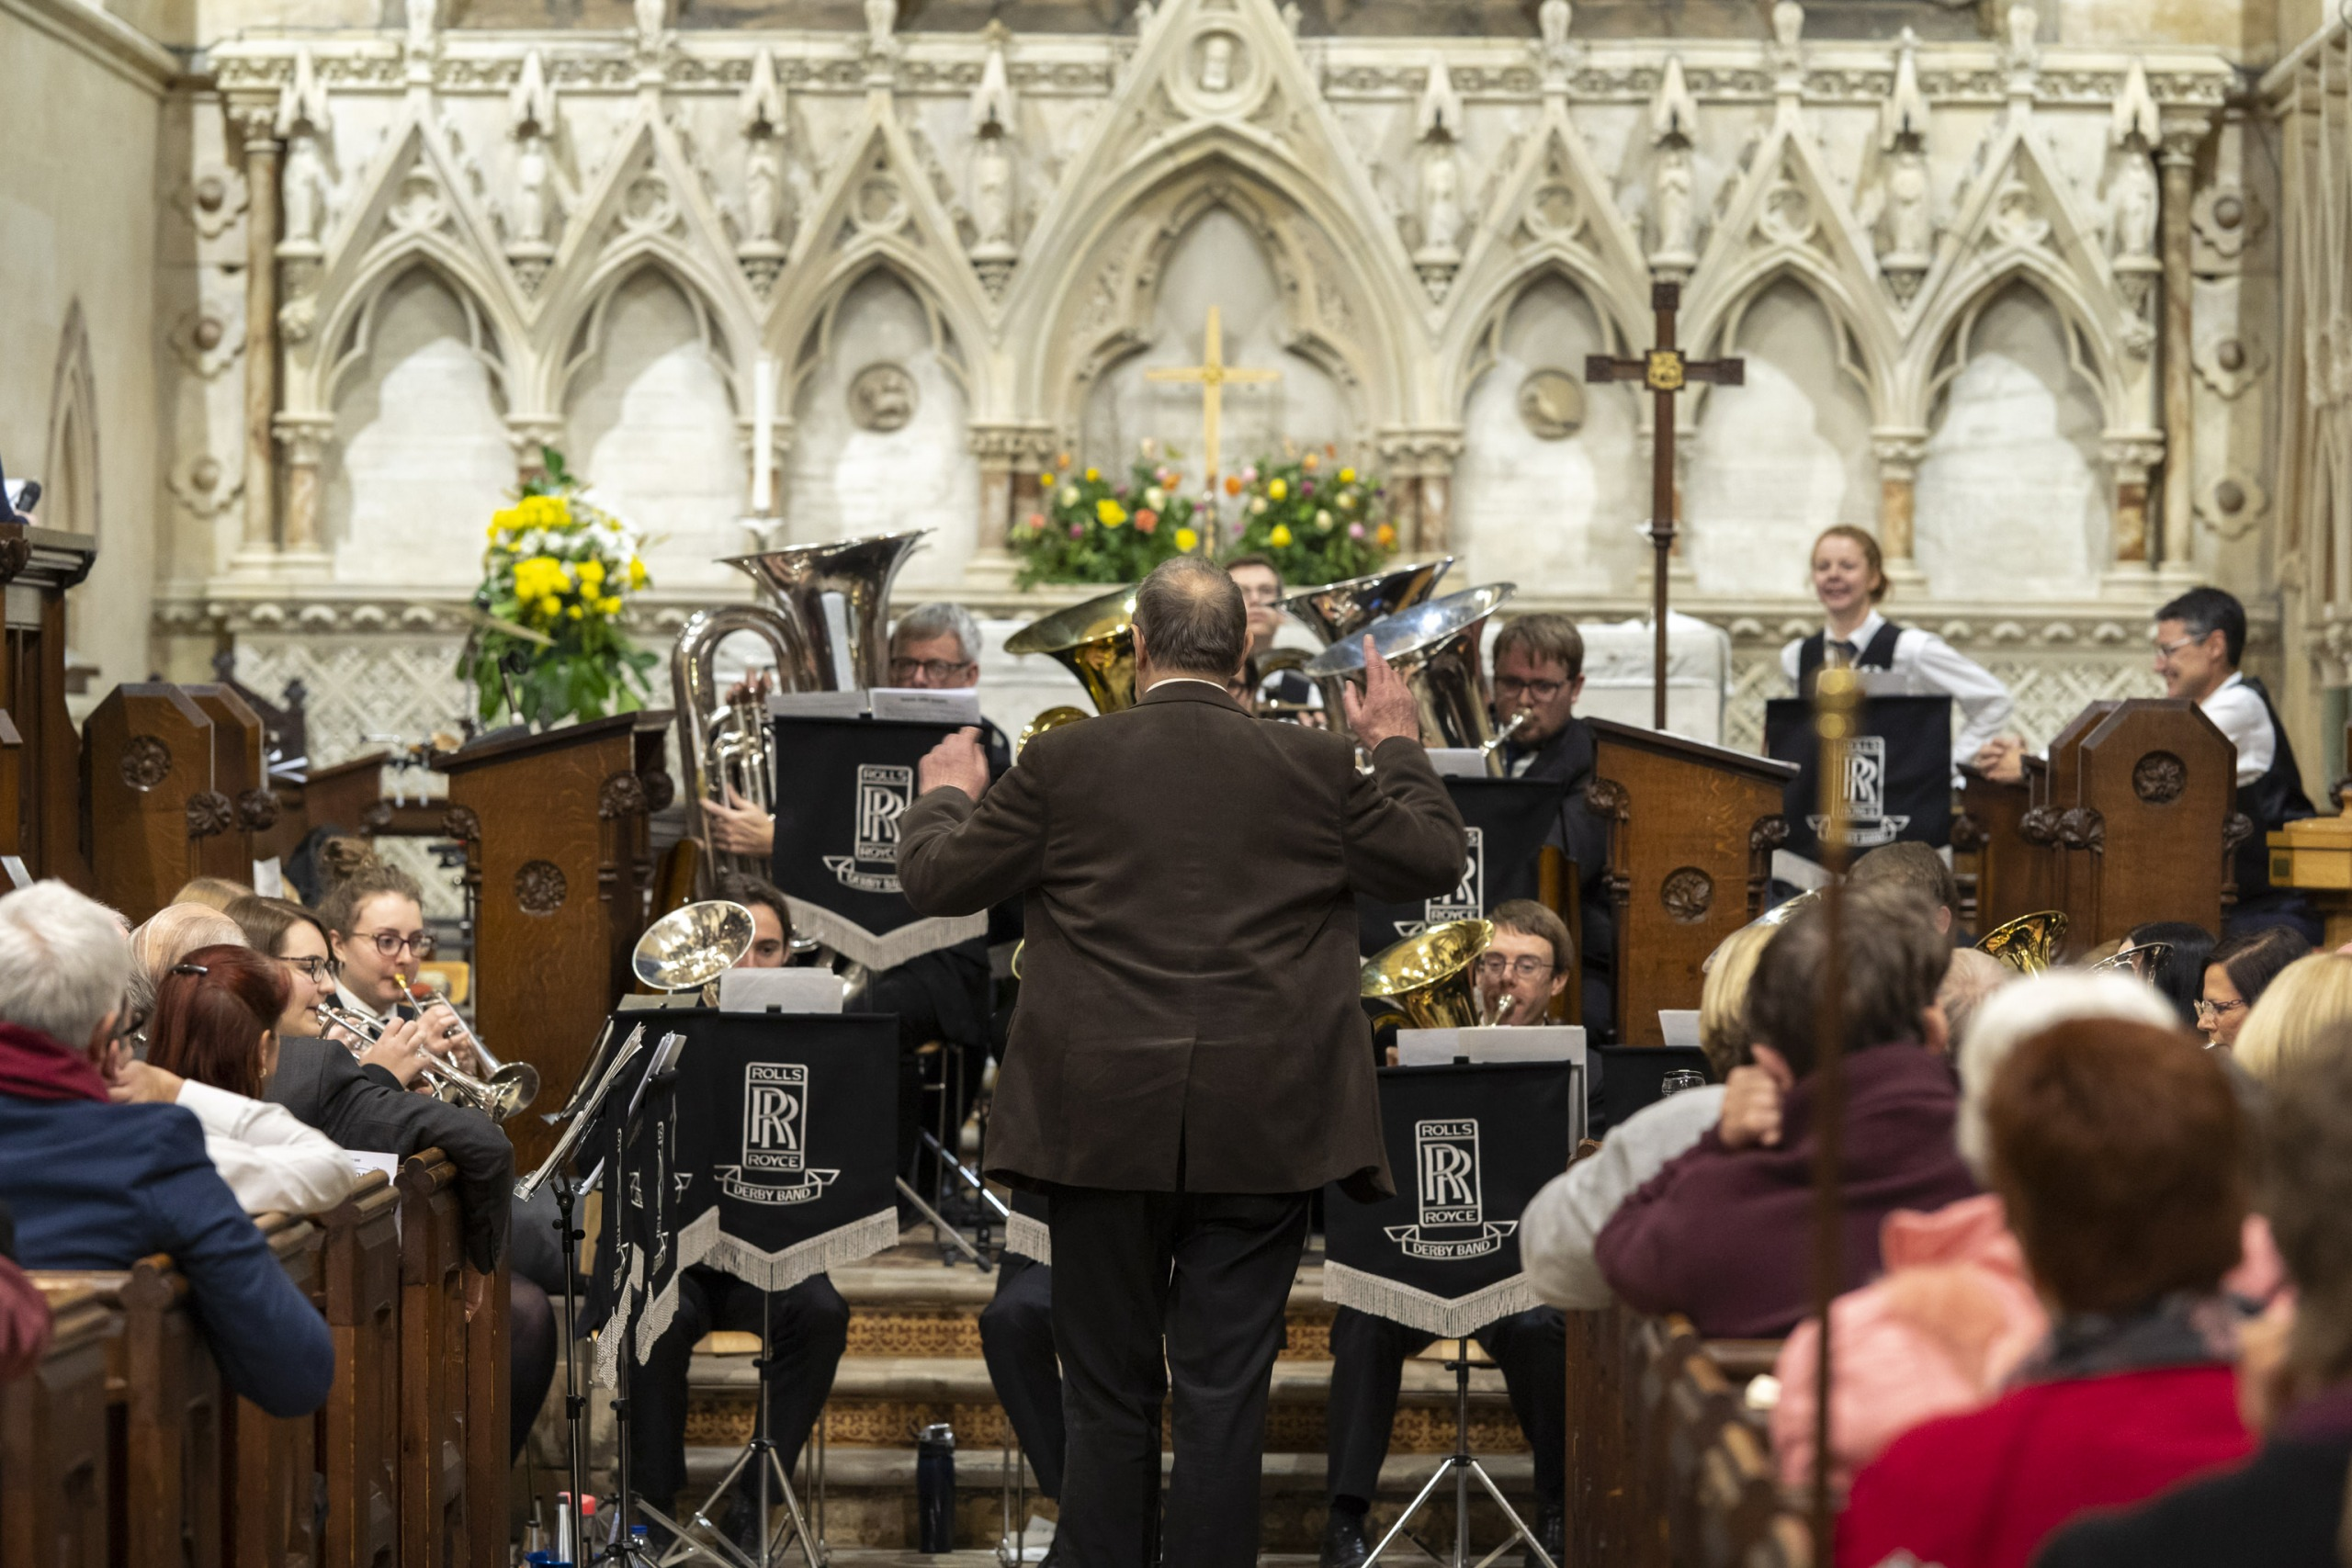 Rolls Royce Brass Band Concert 2019